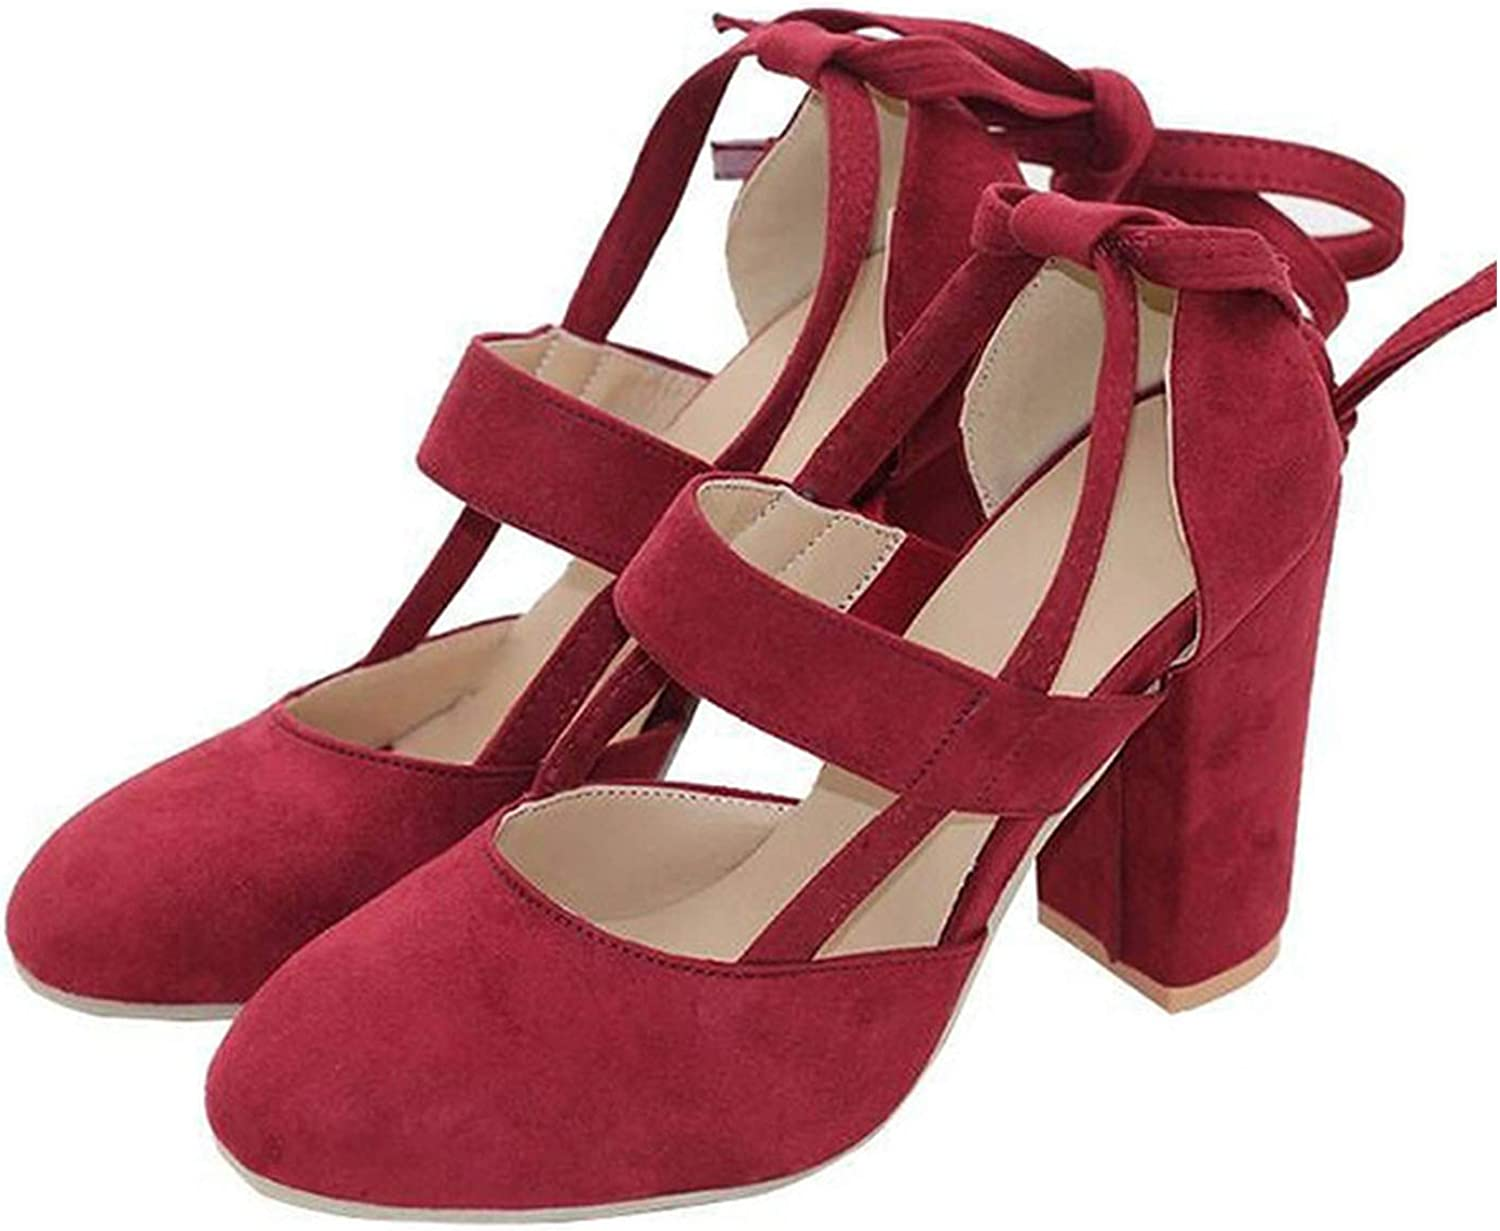 Square Heel shoes Women Pumps High Heel Sandals Suede Ankle Strap Gladiator Women Heel shoes